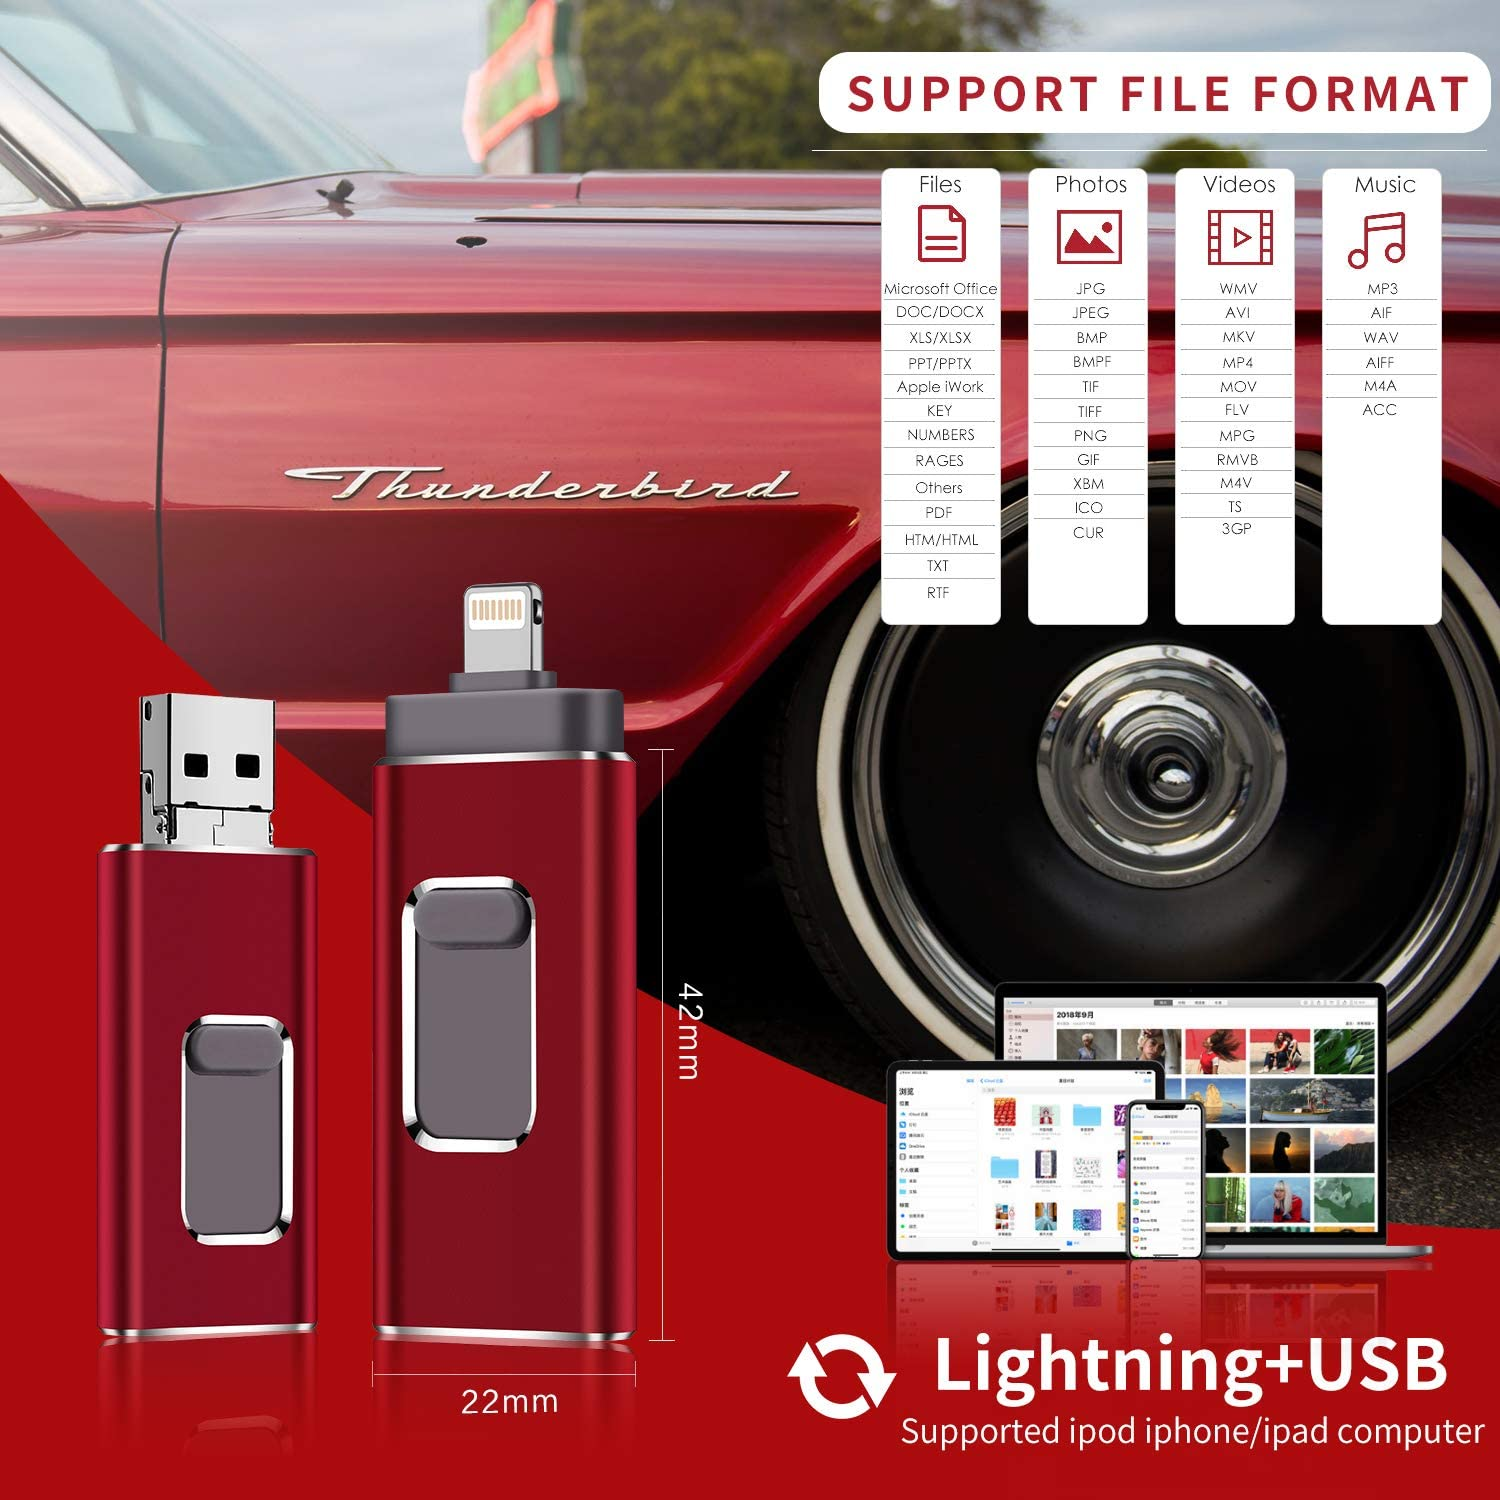 red-128GB USB Flash Drive for iPhone 128gb Memory Stick LTY Photo Stick USB 3.0 Jump Drive Thumb Drives Externa Lightning Memory Stick for iPhone iPad Android and Computers